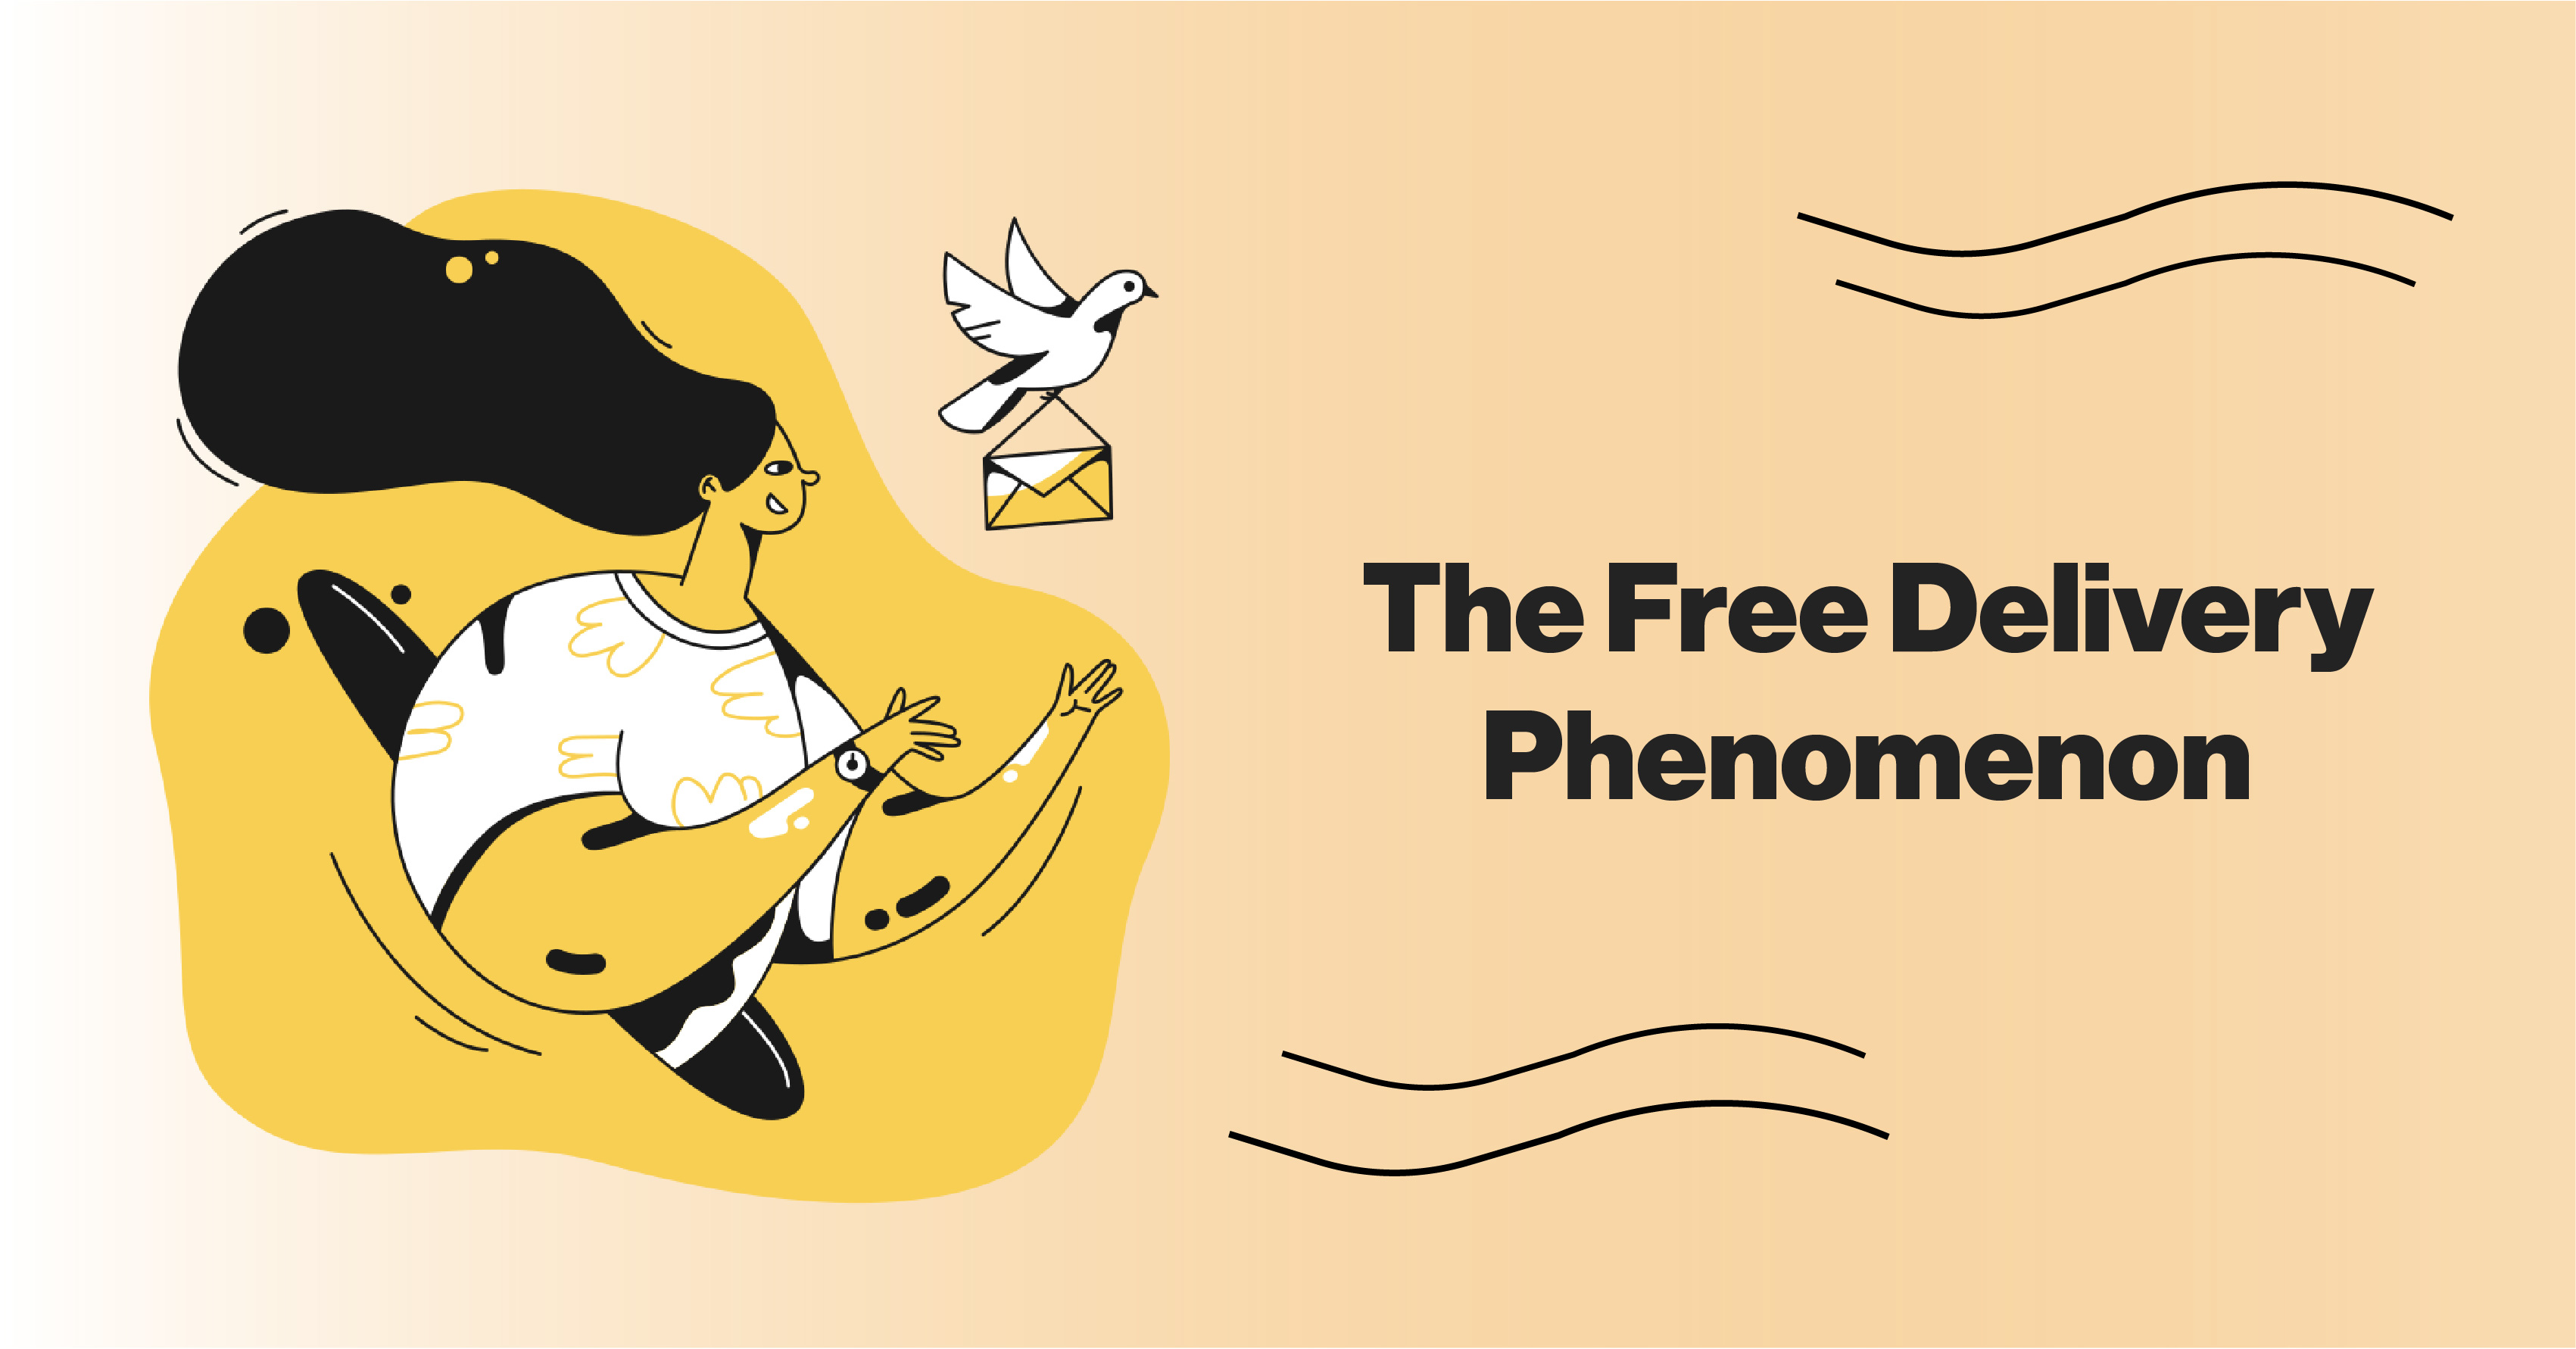 The Free Delivery Phenomenon: 11 Pros & Cons Every Business Should Consider